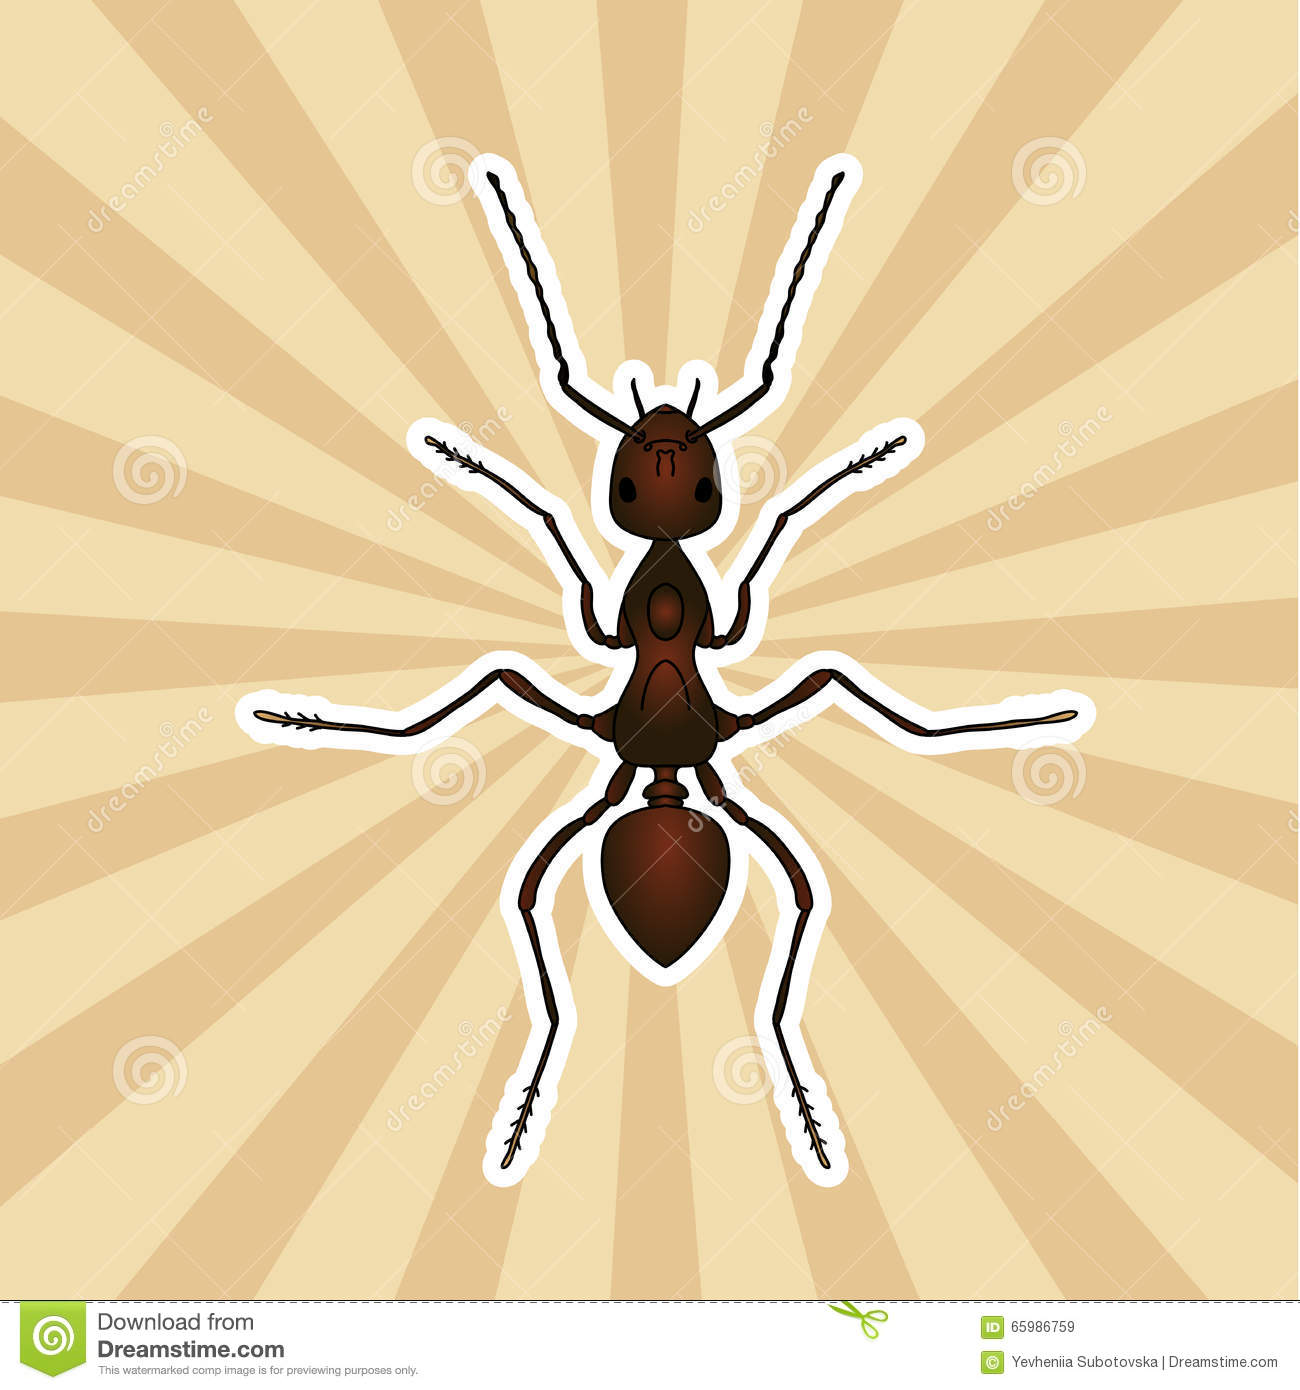 Insect Anatomy. Sticker Formica Exsecta. Sketch Of Ant. Ant Design ...